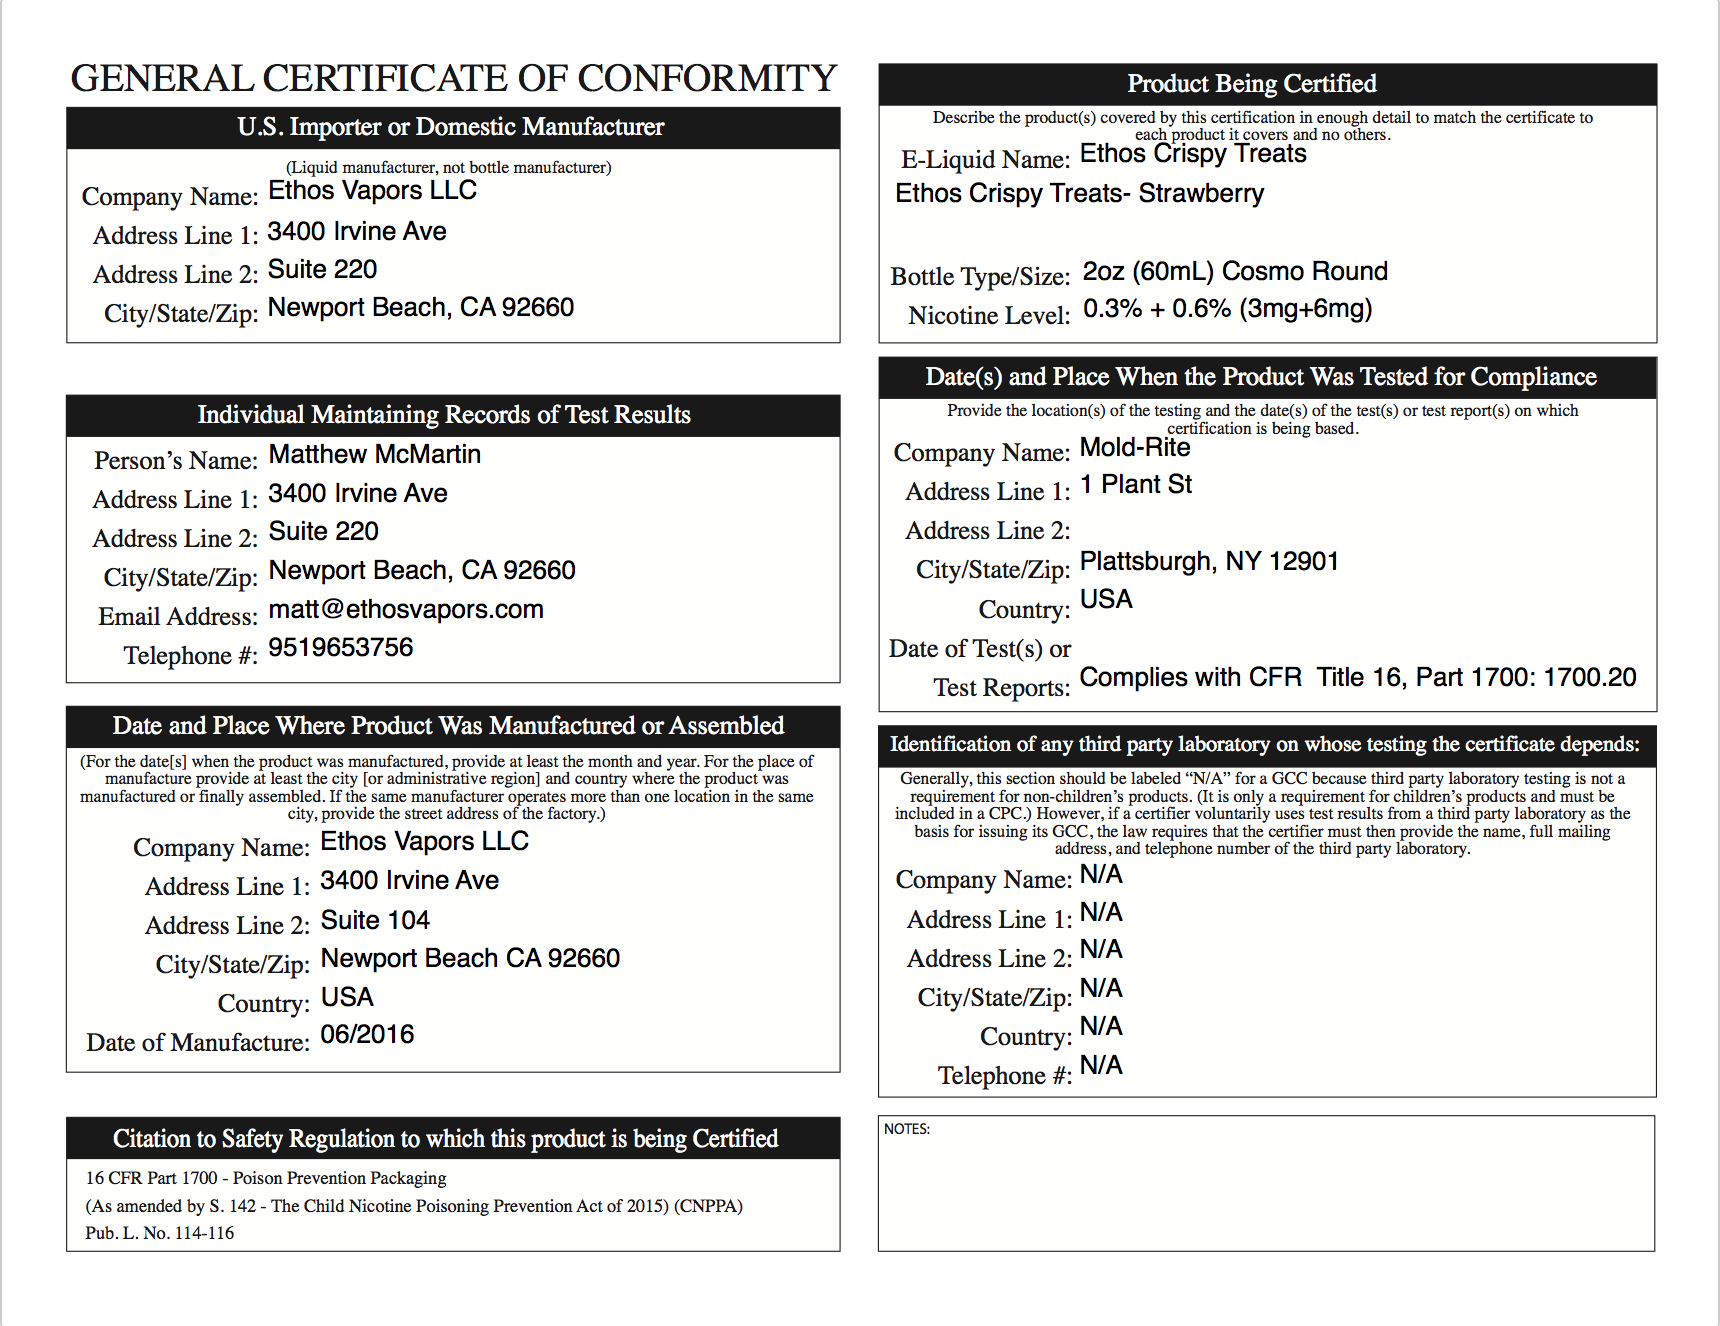 General Certificate of Conformity (GCC)